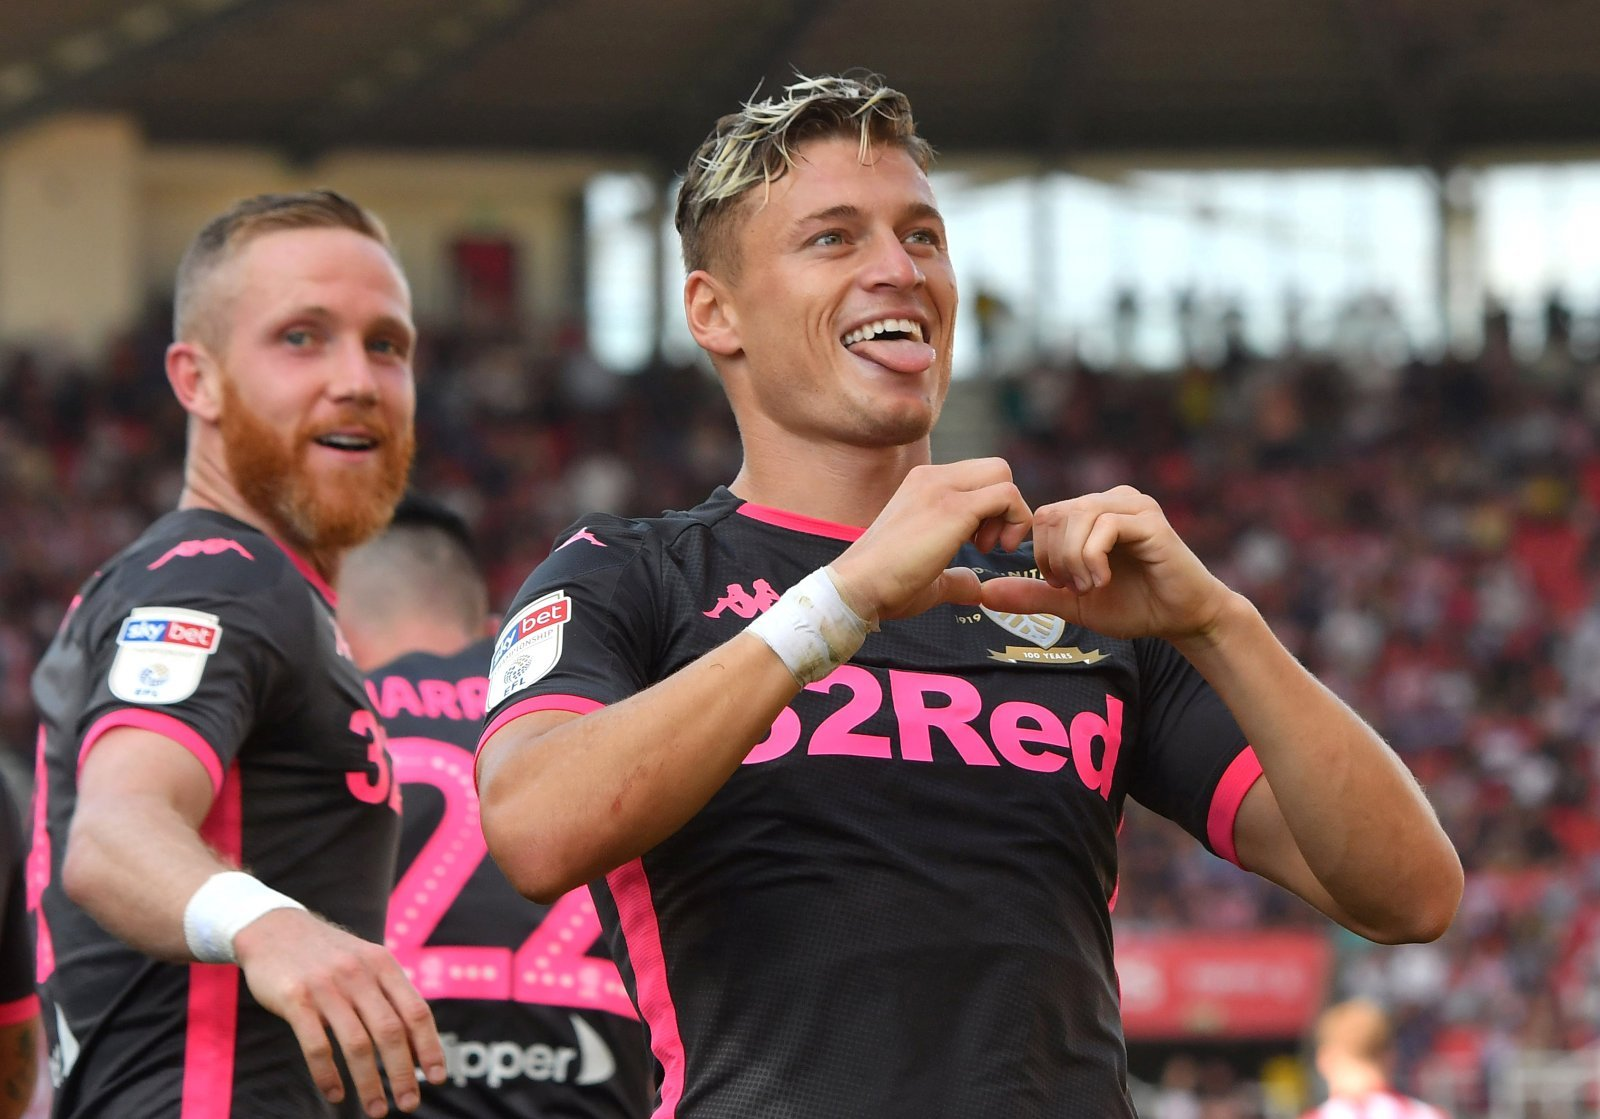 Leeds United's Ezgjan Alioski celebrates scoring their second goal v Stoke, August 2019